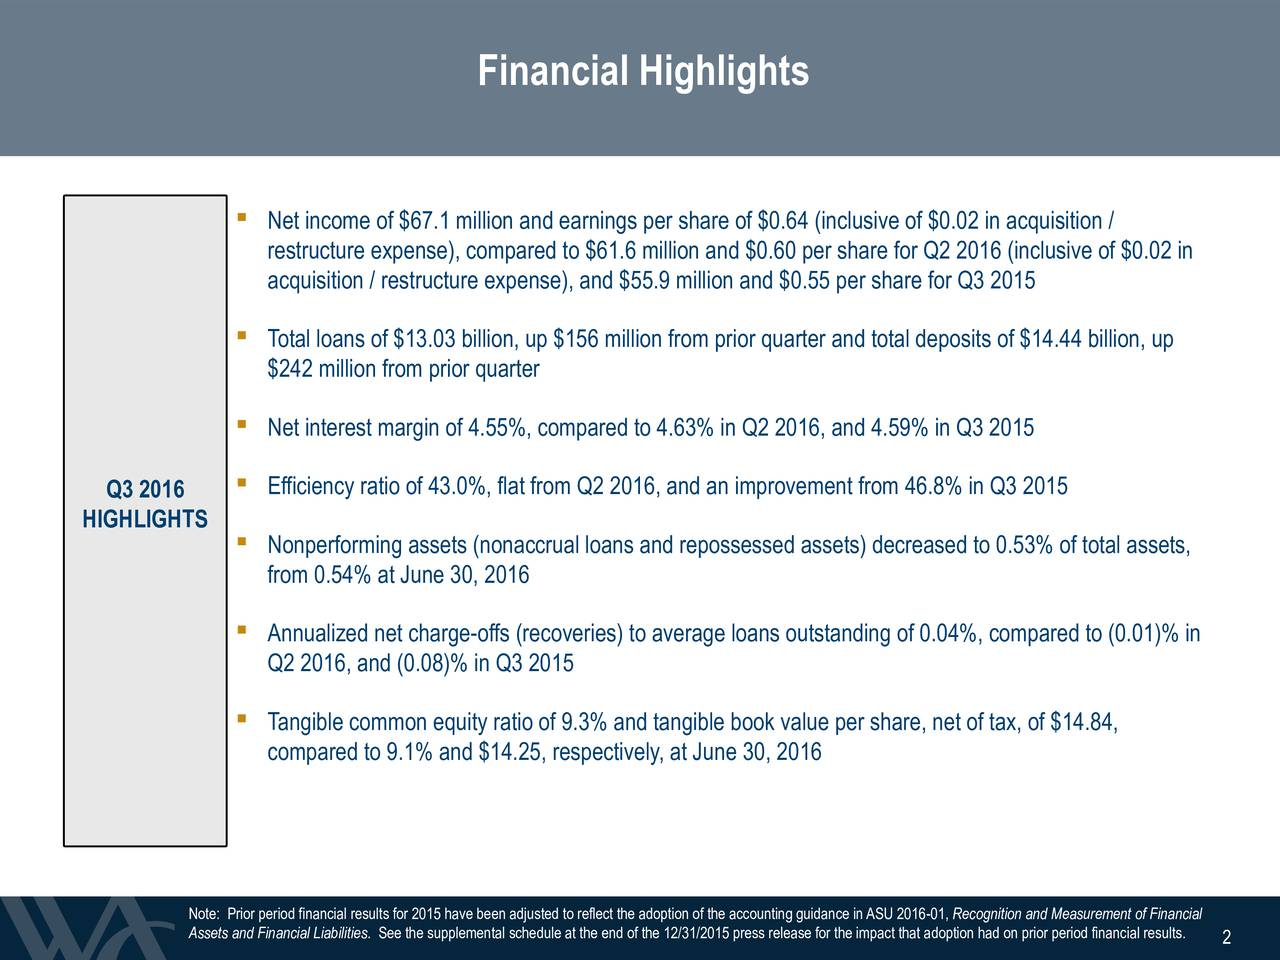 Net income of $67.1 million and earnings per share of $0.64 (inclusive of $0.02 in acquisition / restructure expense), compared to $61.6 million and $0.60 per share for Q2 2016 (inclusive of $0.02 in acquisition / restructure expense), and $55.9 million and $0.55 per share for Q3 2015 Total loans of $13.03 billion, up $156 million from prior quarter and total deposits of $14.44 billion, up $242 million from prior quarter Net interest margin of 4.55%, compared to 4.63% in Q2 2016, and 4.59% in Q3 2015 Q3 2016  Efficiency ratio of 43.0%, flat from Q2 2016, and an improvement from 46.8% in Q3 2015 HIGHLIGHTS Nonperforming assets (nonaccrual loans and repossessed assets) decreased to 0.53% of total assets, from 0.54% at June30, 2016 Annualized net charge-offs (recoveries) to average loans outstanding of 0.04%, compared to (0.01)% in Q2 2016, and (0.08)% in Q3 2015 Tangible common equity ratio of 9.3% and tangible book value per share, net of tax, of $14.84, compared to 9.1% and $14.25, respectively, at June30, 2016 2 Assets and Financial Liabilities. See the supplemental schedule at the end of the 12/31/2015 press releas2 for the impact that adoption had on prior period financial results.